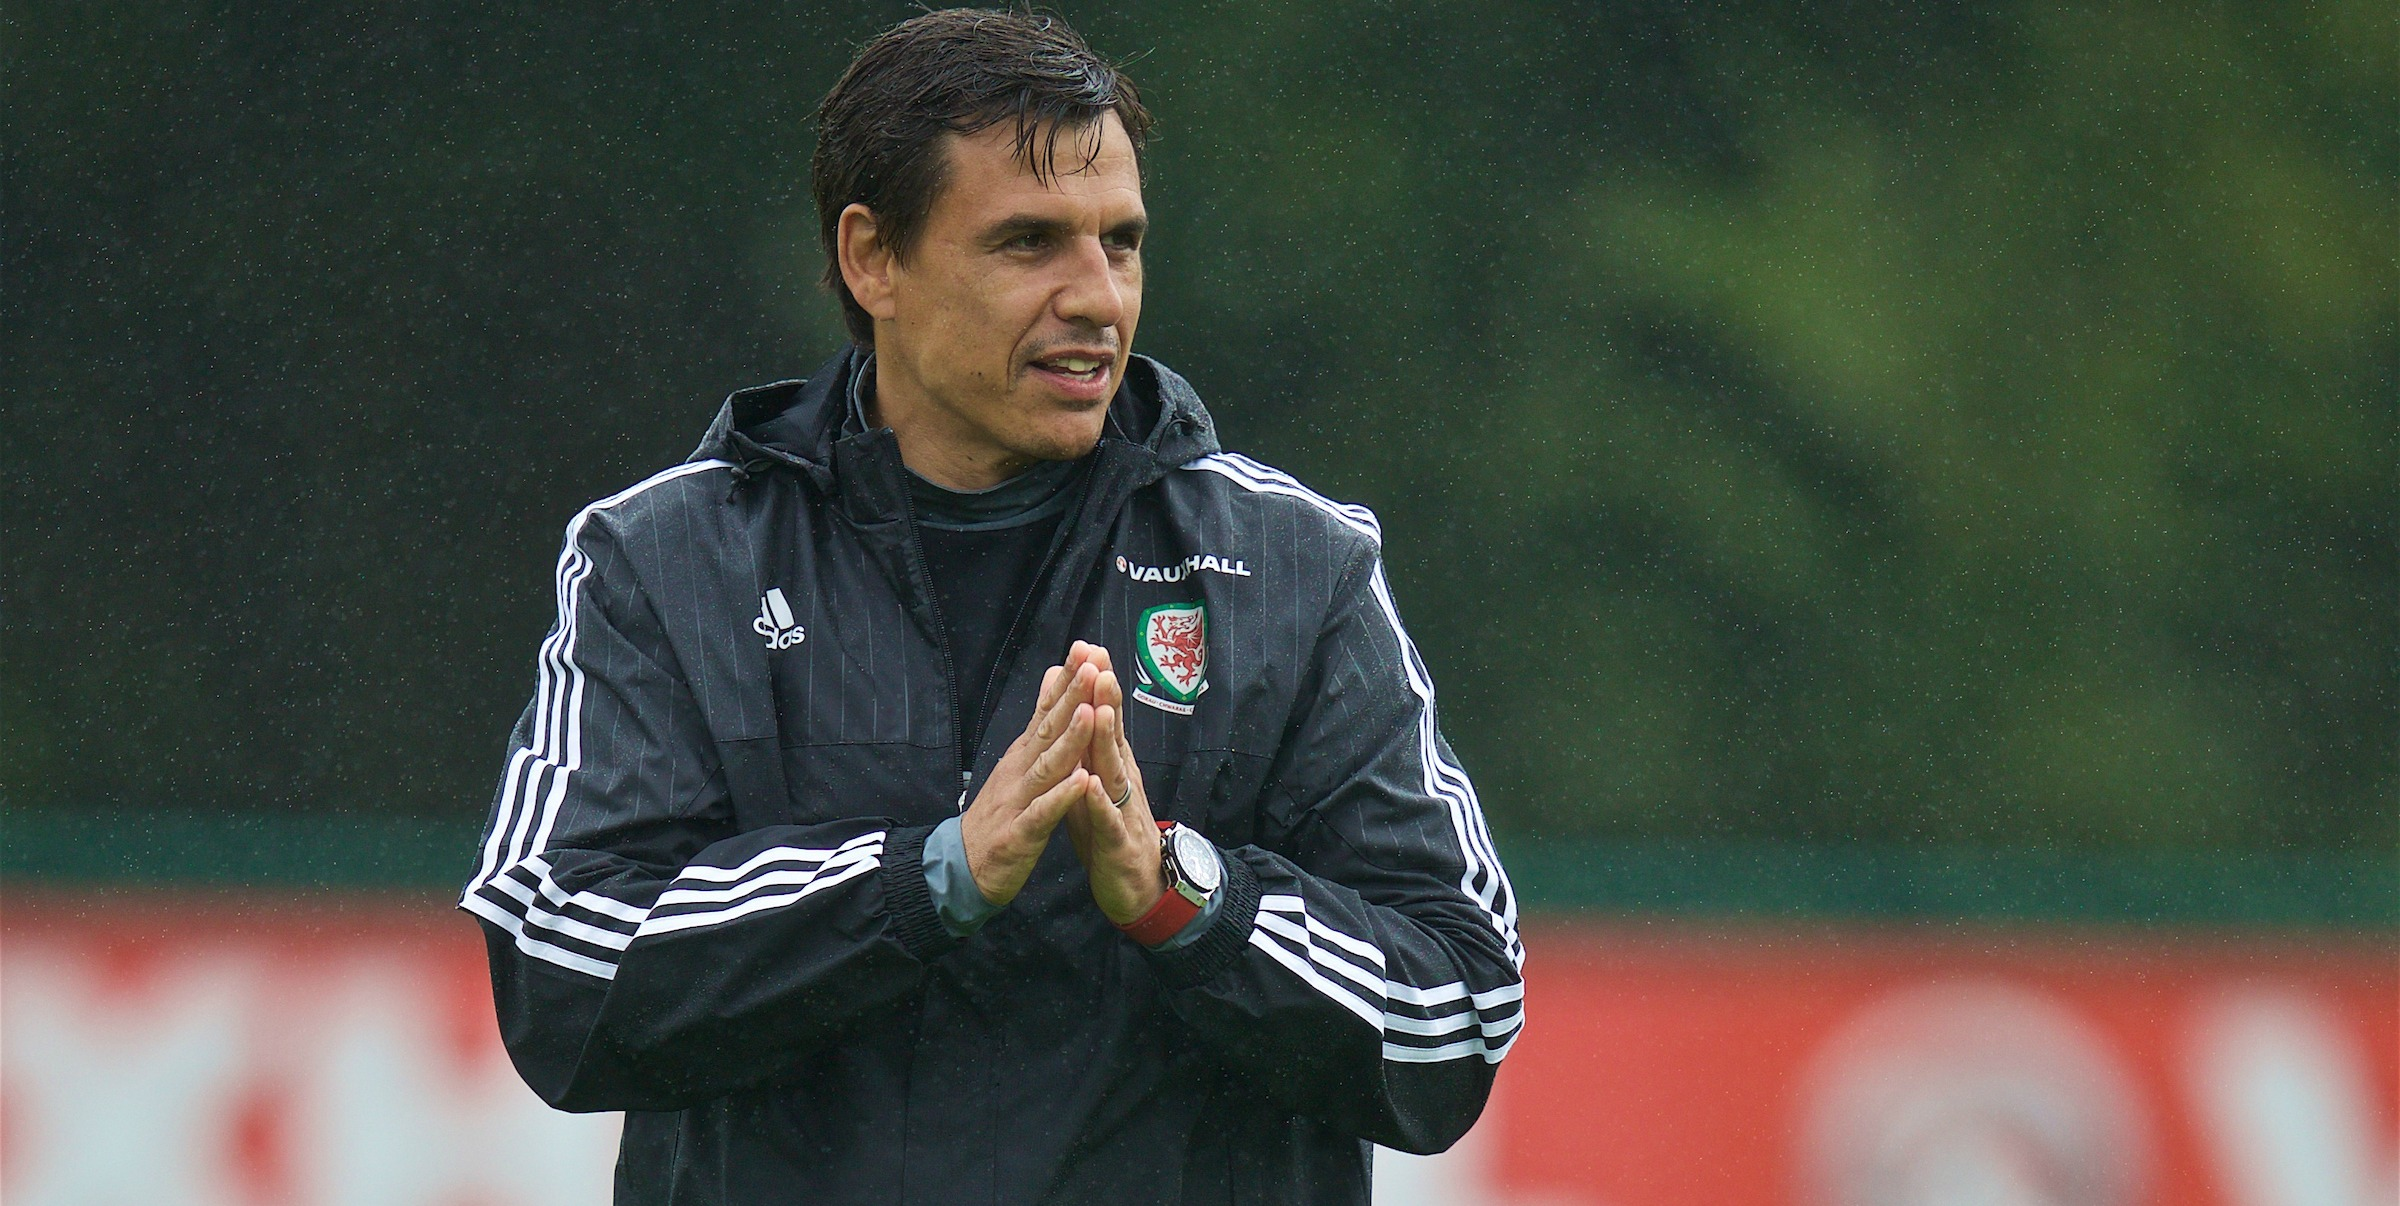 Wales boss Chris Coleman thanks schools for support during Euro 2016